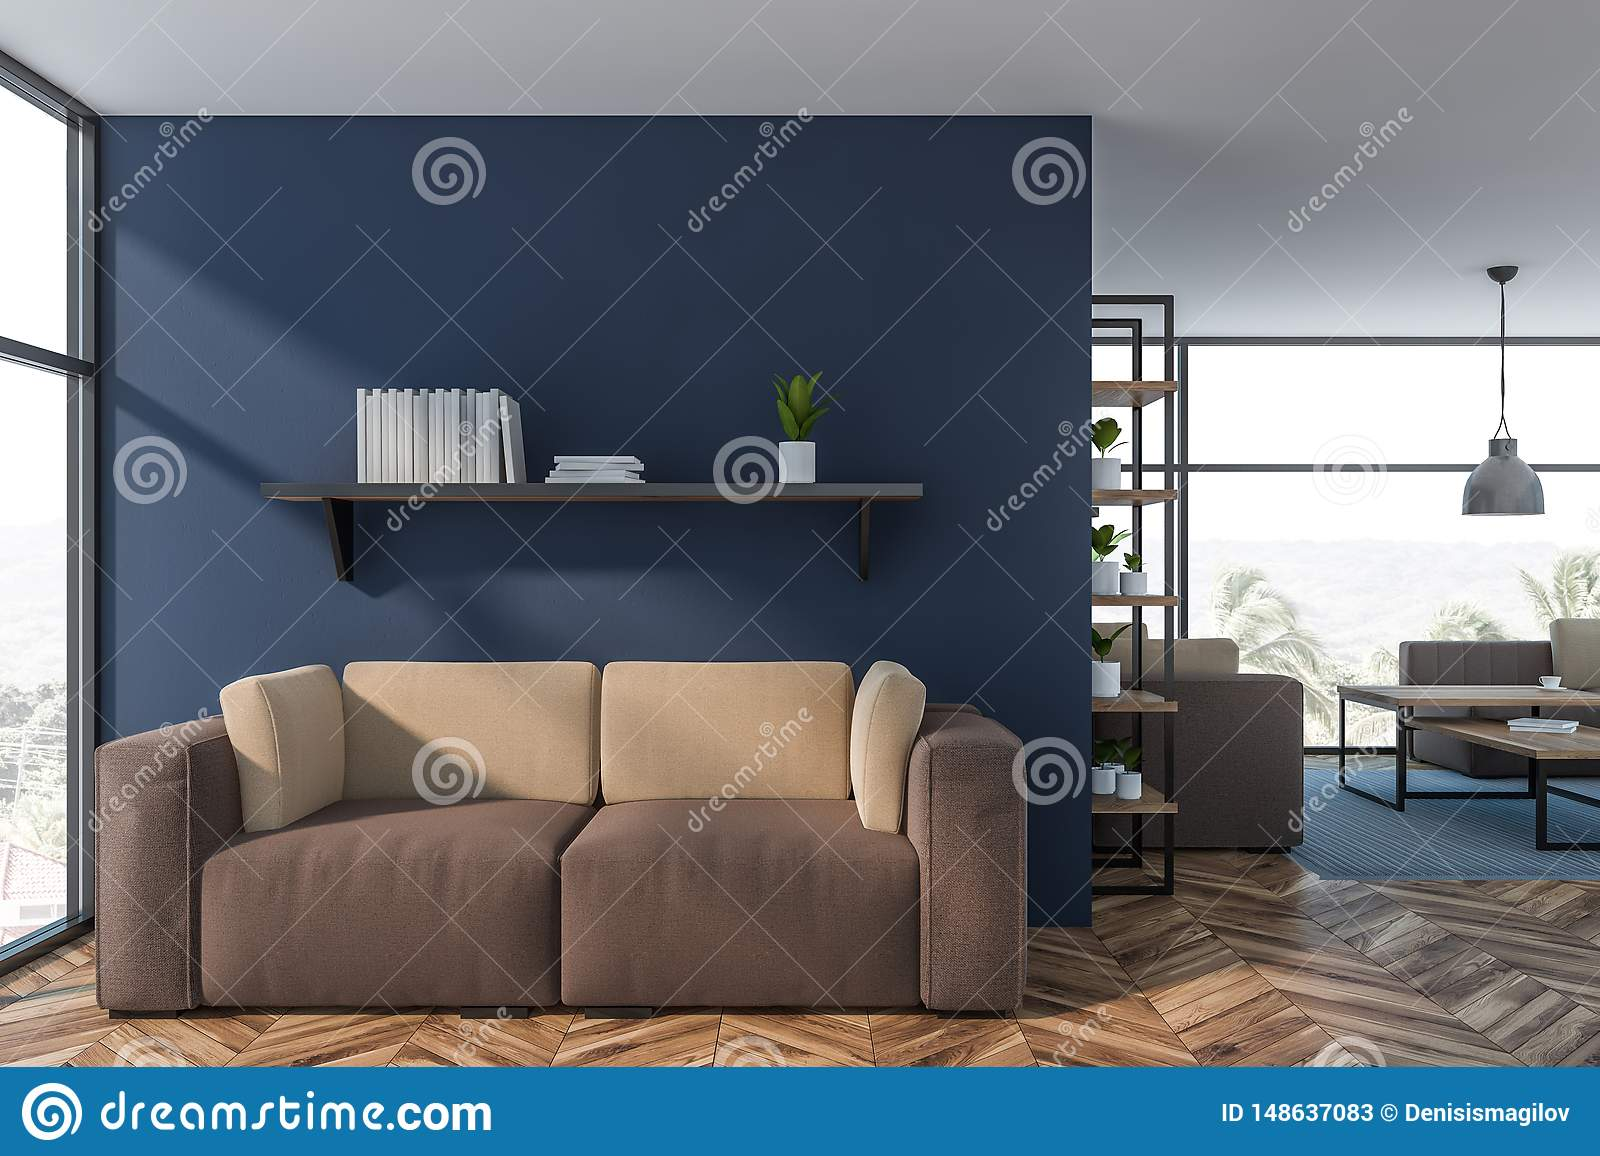 Luxury Blue Living Room Interior With Sofa Stock Illustration Illustration Of Flower Coffee 148637083